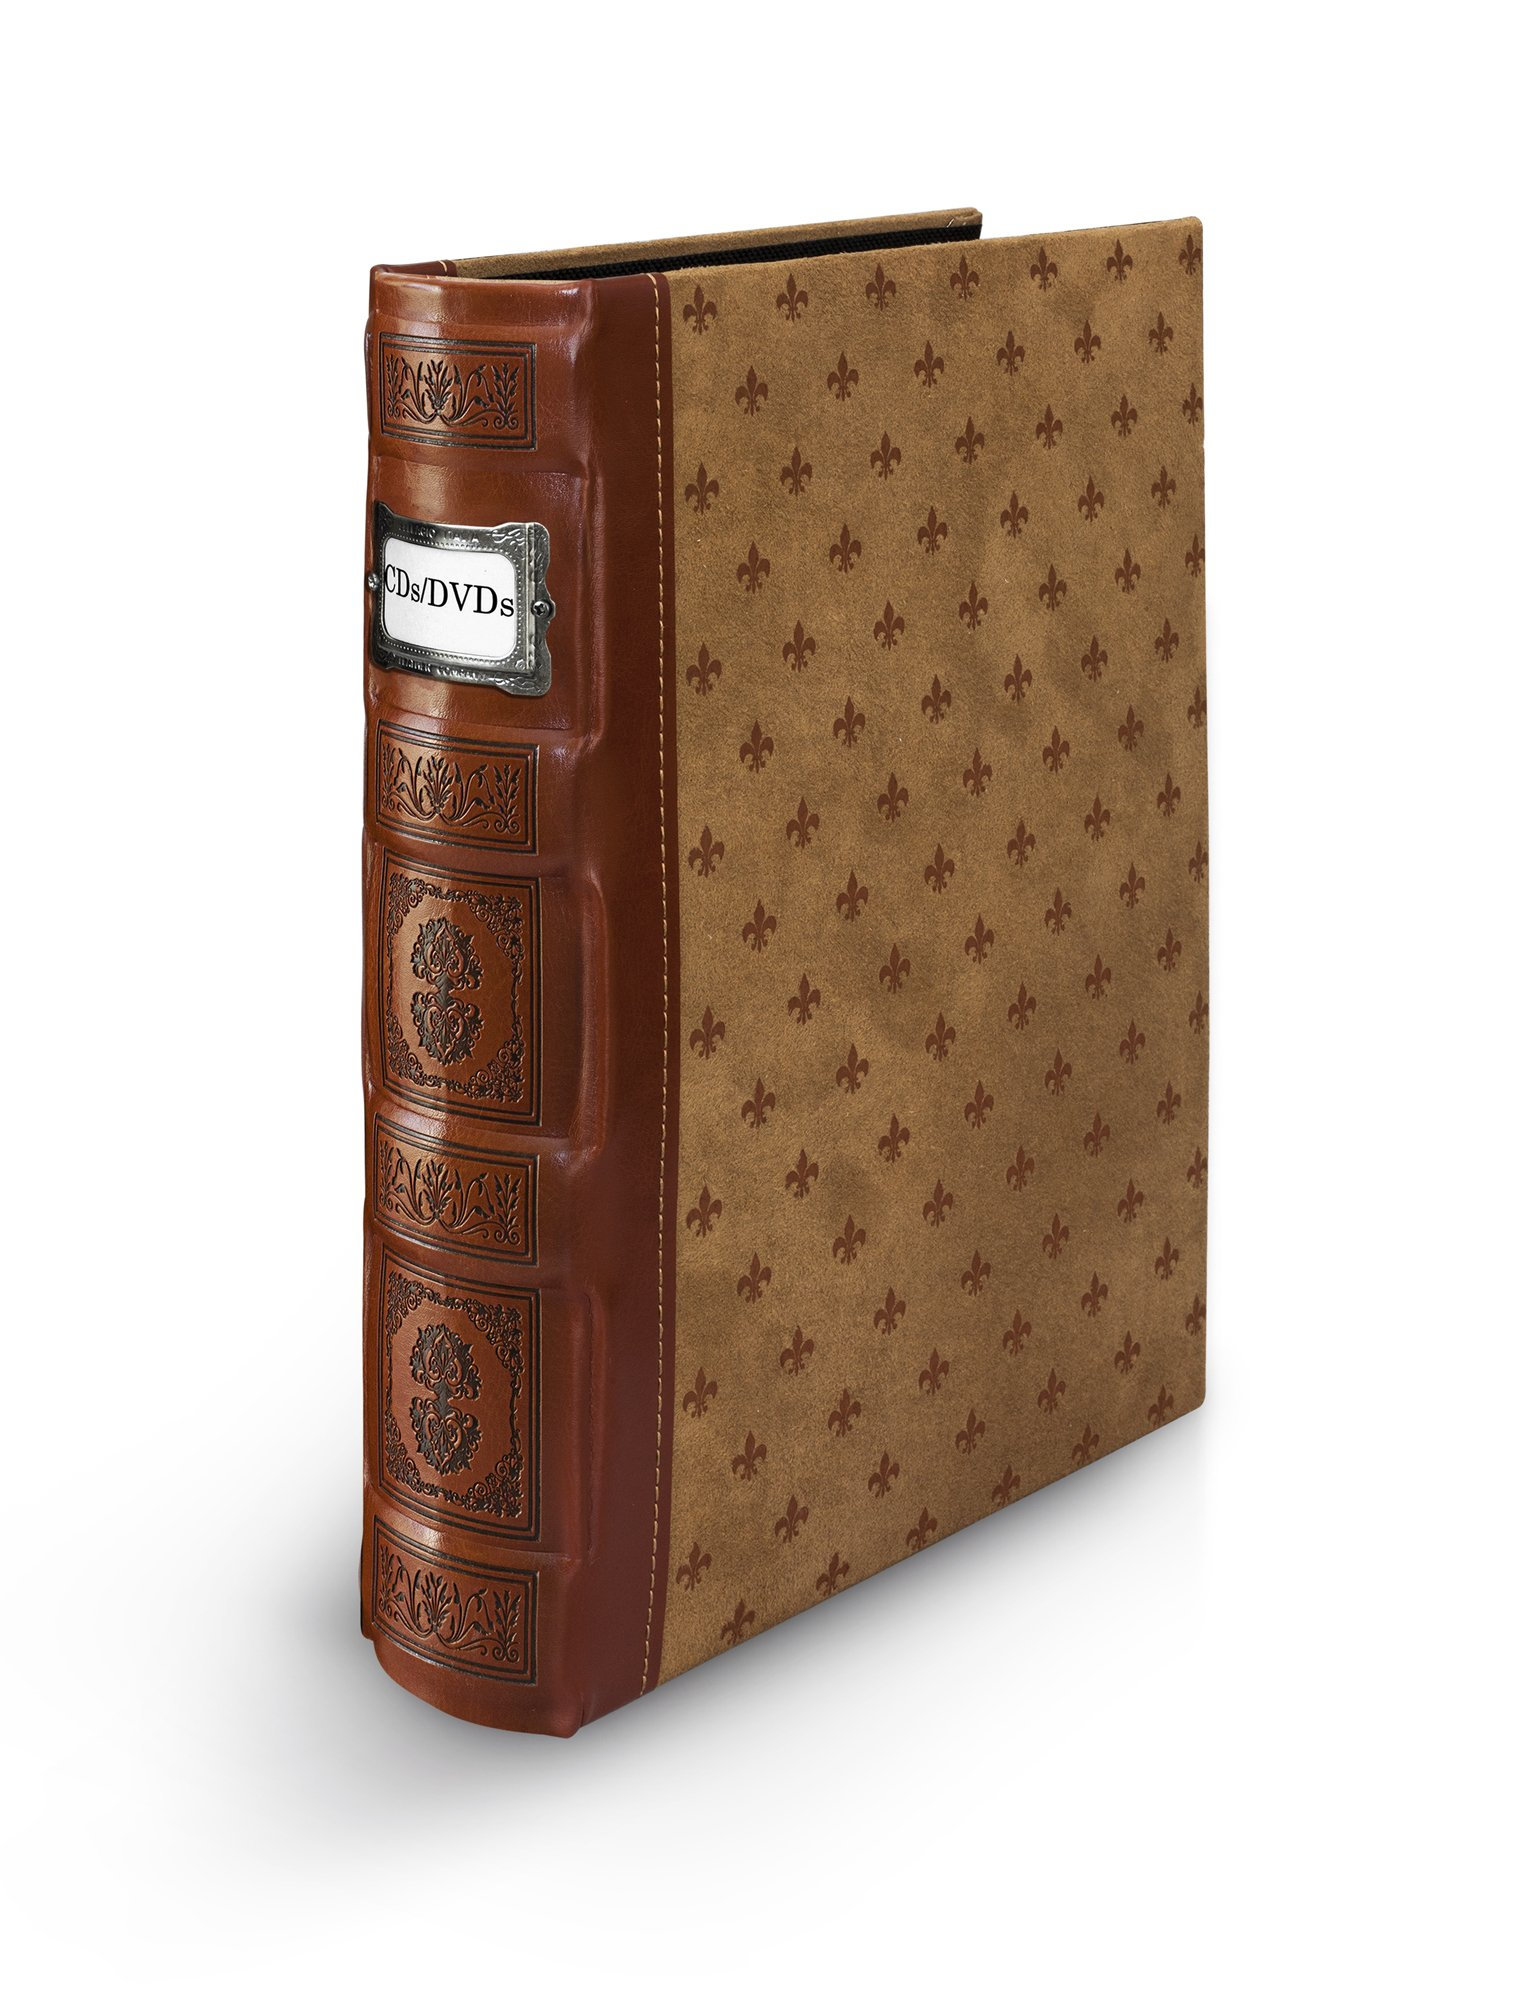 Bellagio-Italia DVD Storage Binder, Cognac - Holds up to 48 DVDs, CDS Blu-Rays - Protects DVD Cover Art - Acid-Free Sheets